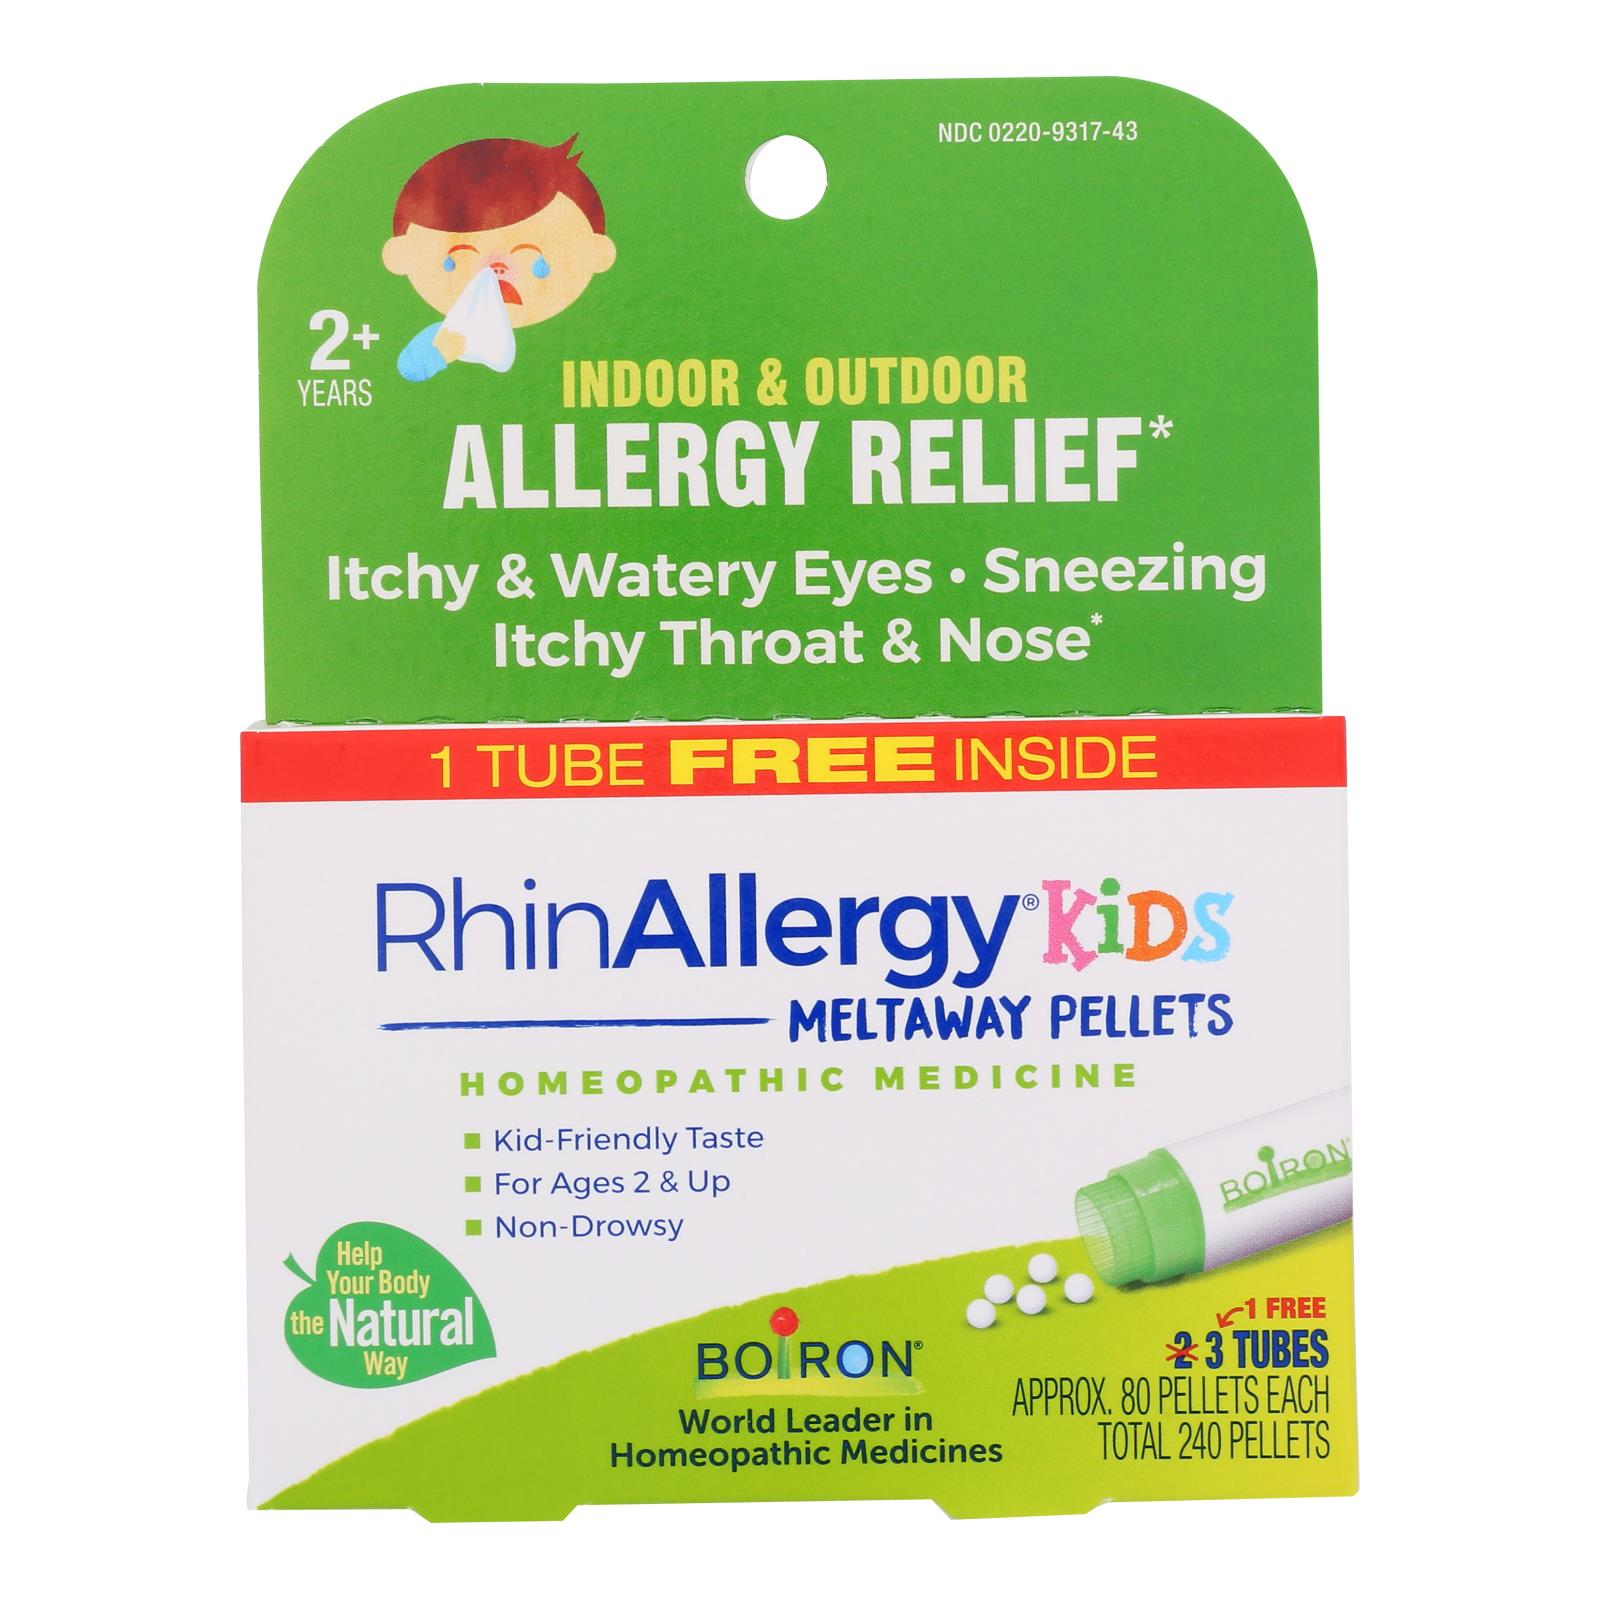 Boiron - Rhinallergy Kds Pellets - 3 CT